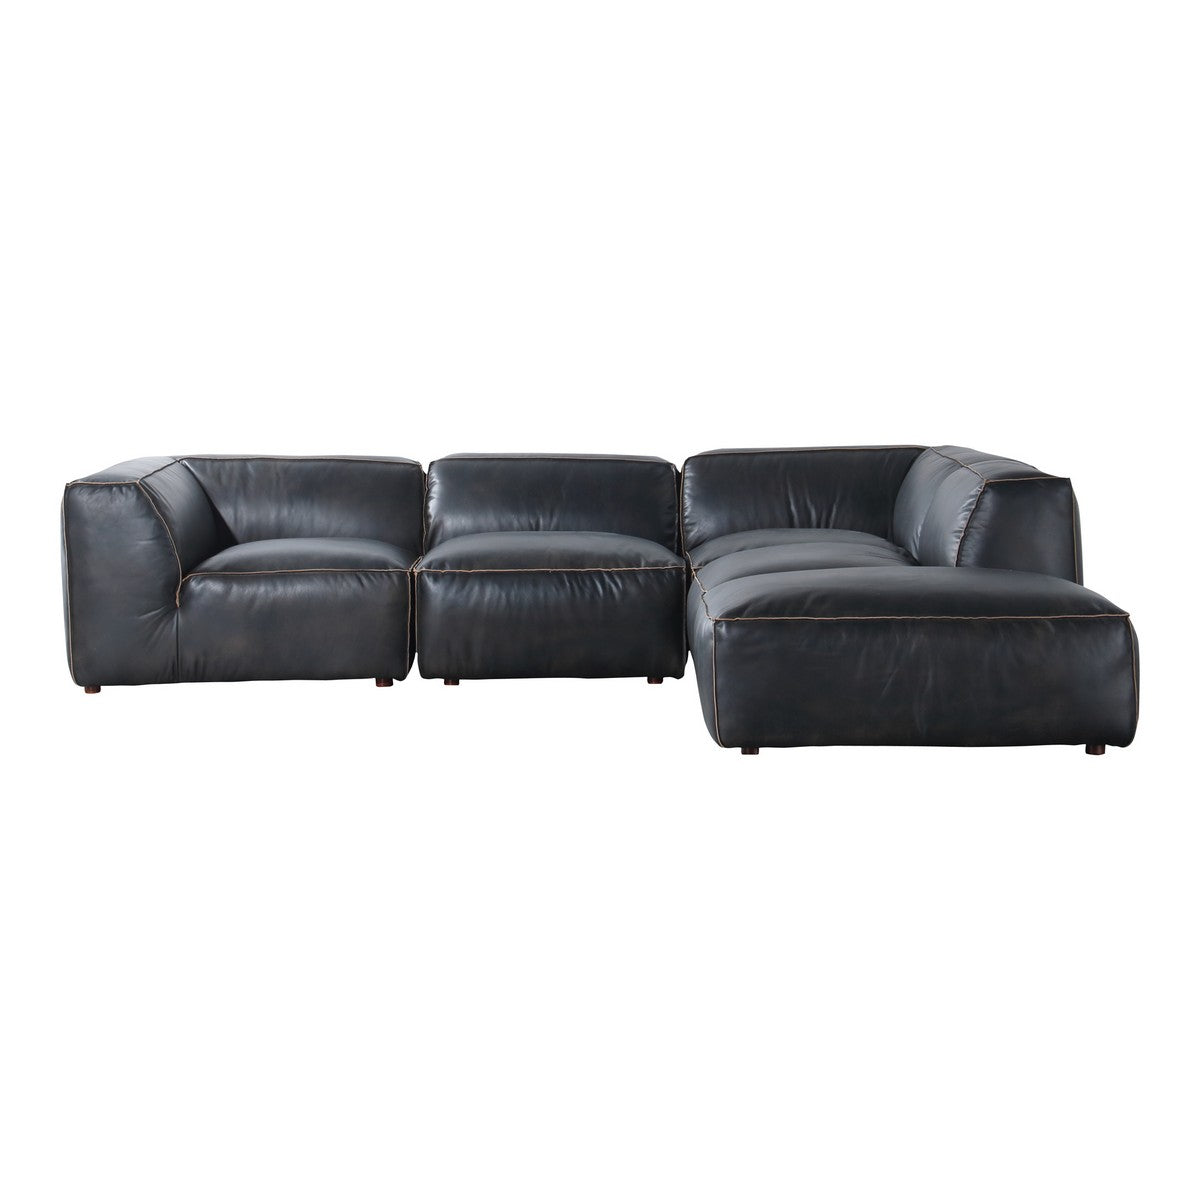 Moe's Home Collection Luxe Lounge Modular Sectional Antique Black - QN-1023-01 - Moe's Home Collection - Extras - Minimal And Modern - 1